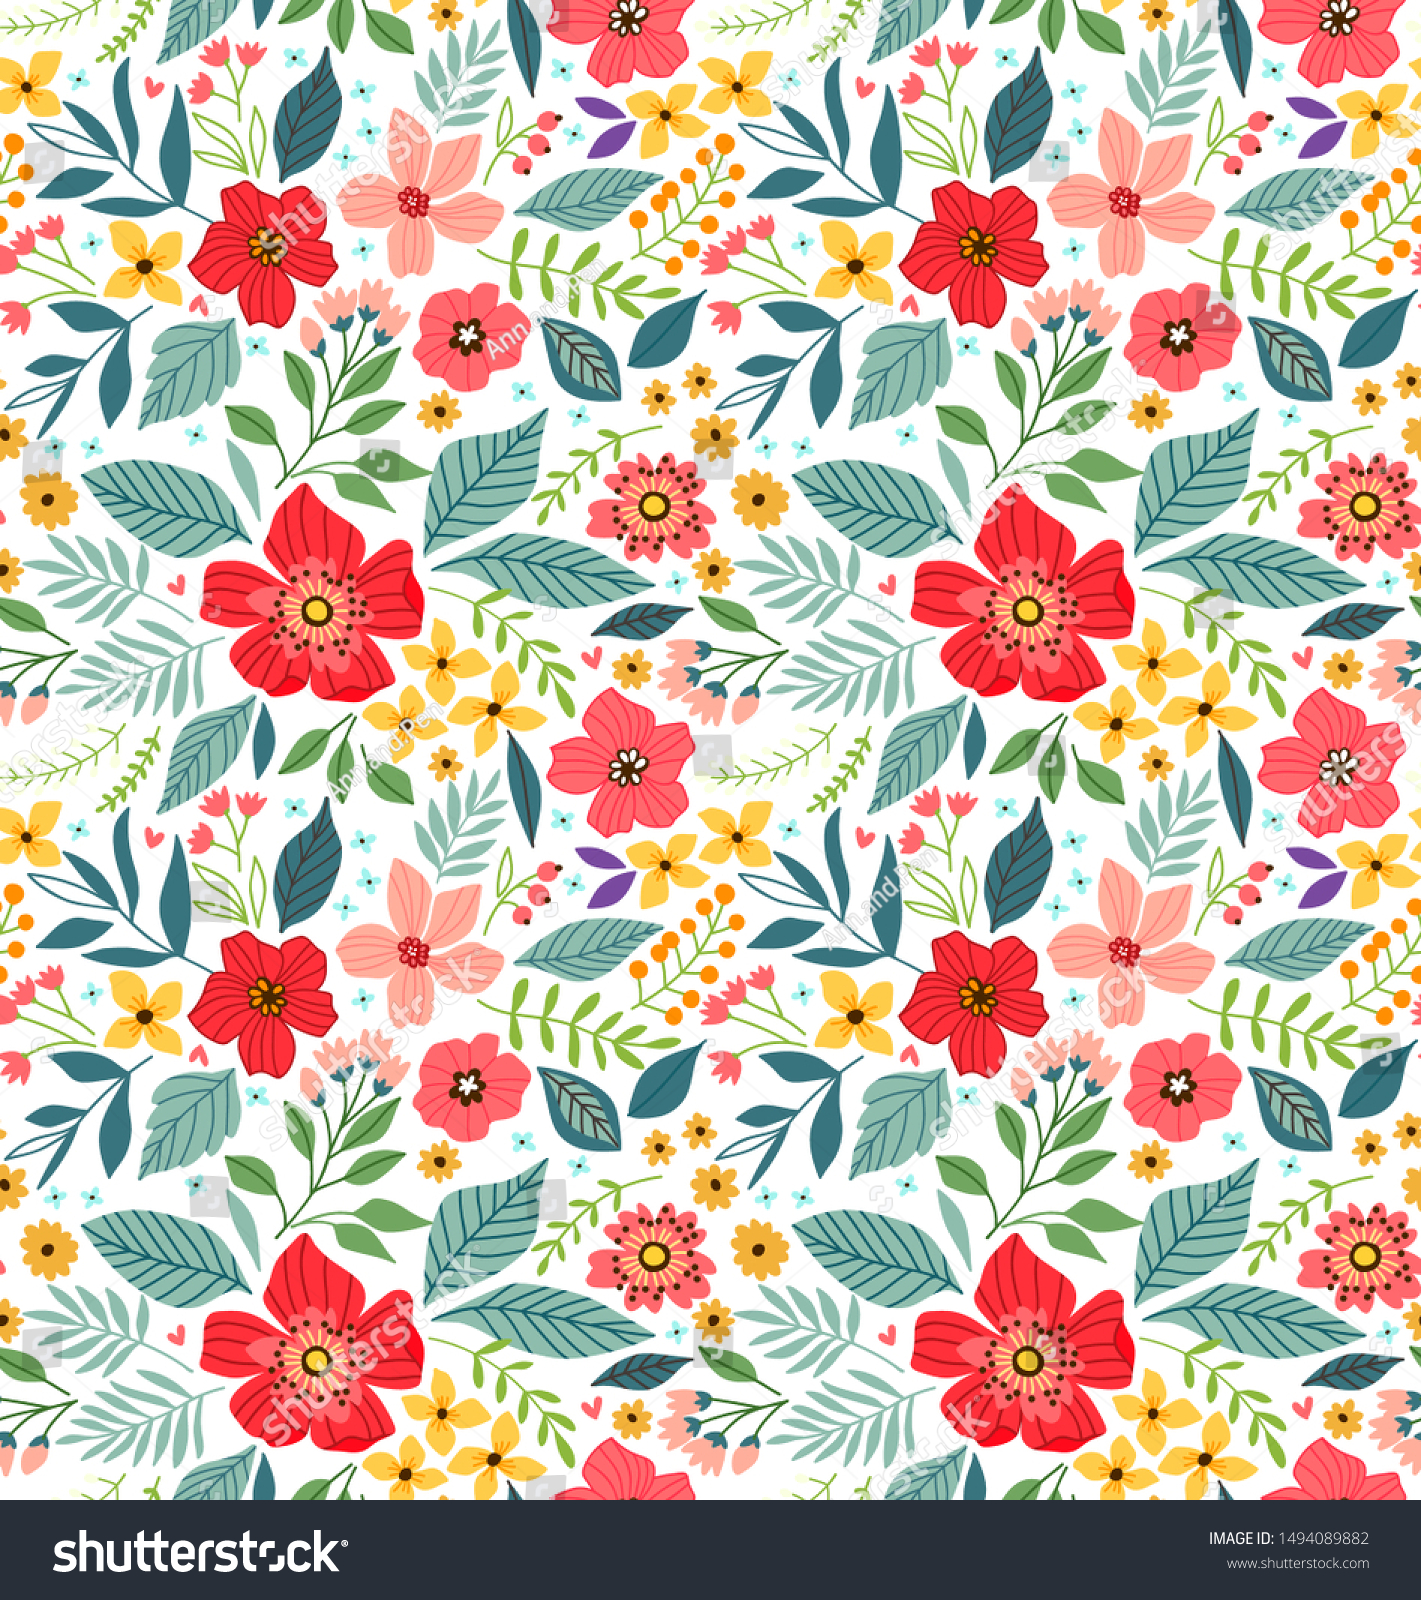 Vintage Floral Background Seamless Vector Pattern Stock Image